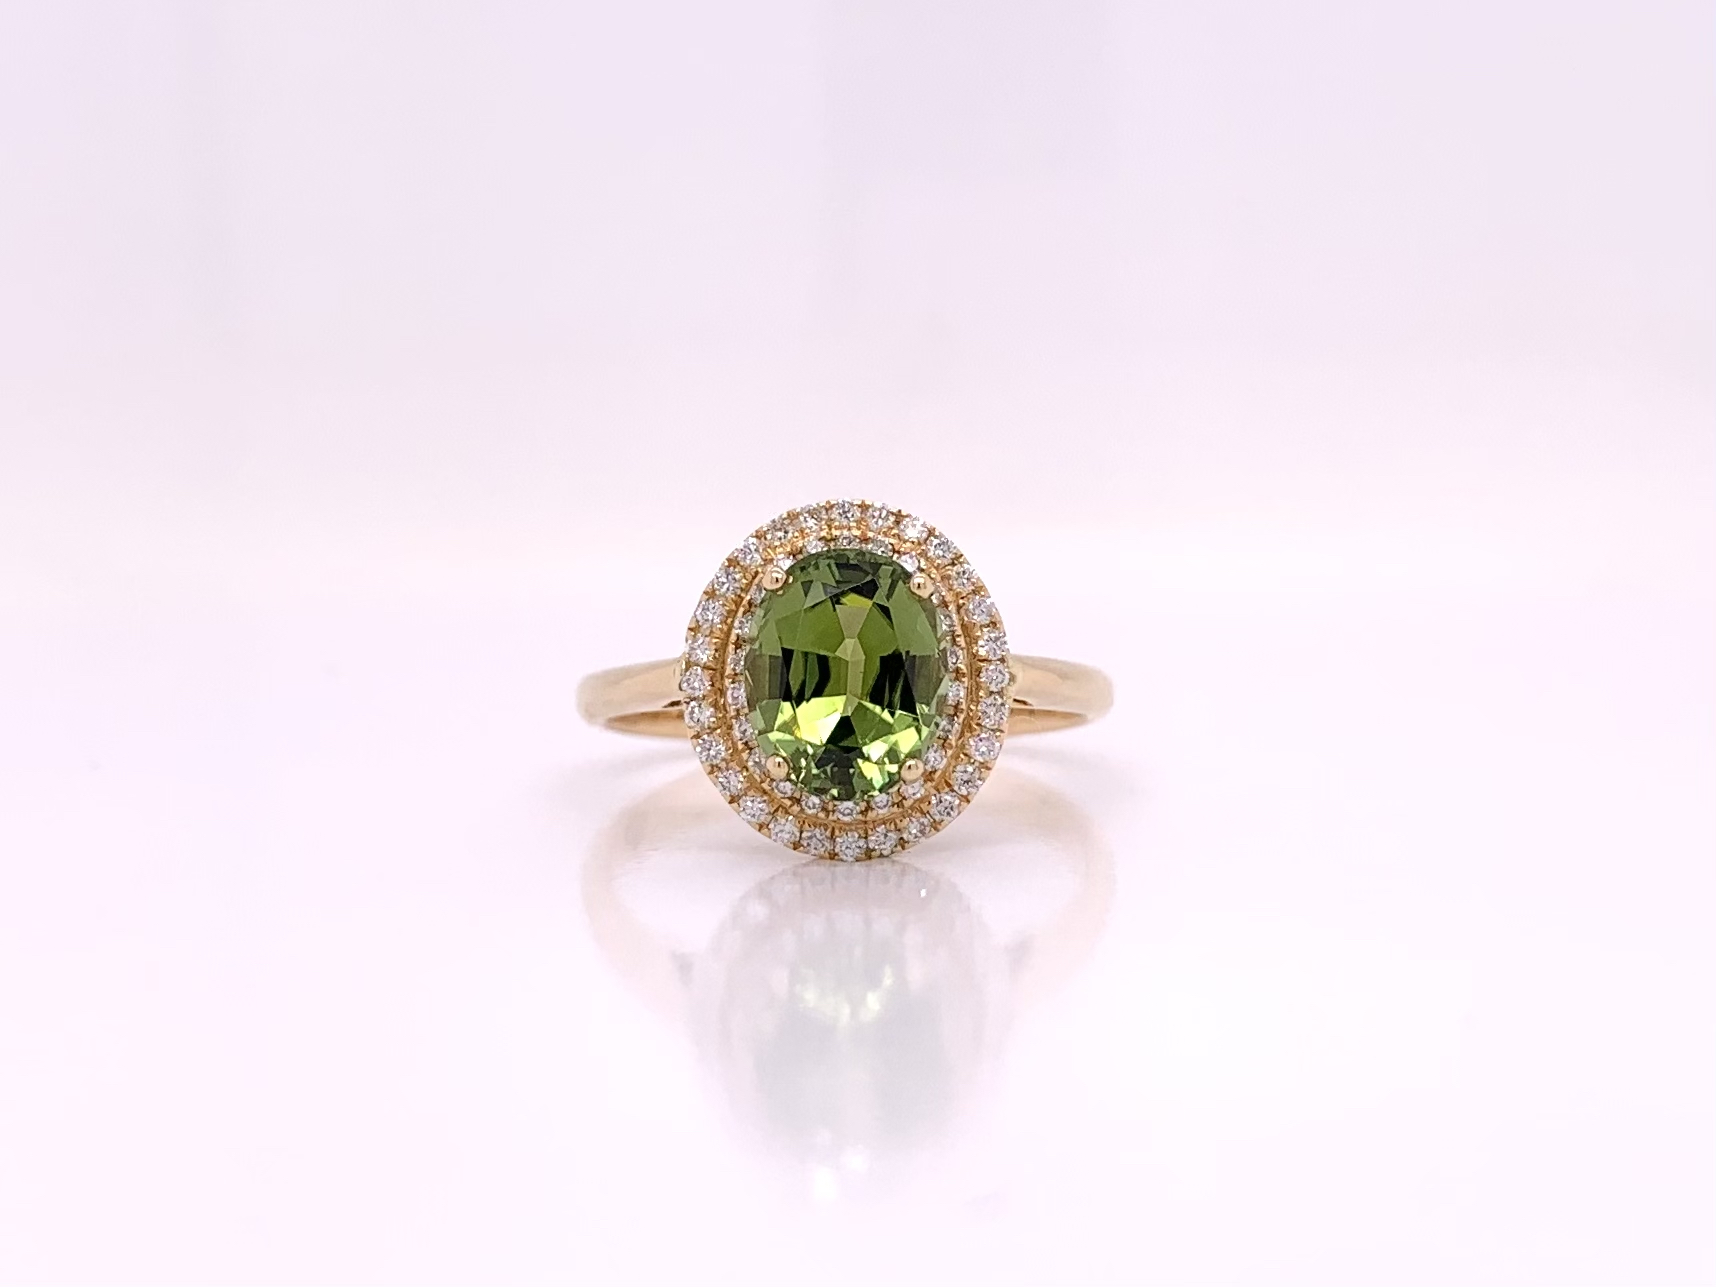 Details about  /0.66 ct Tourmaline Gemstone 0.06 ct Diamond 12x7 MM 14K 18K Solid Gold Earrings